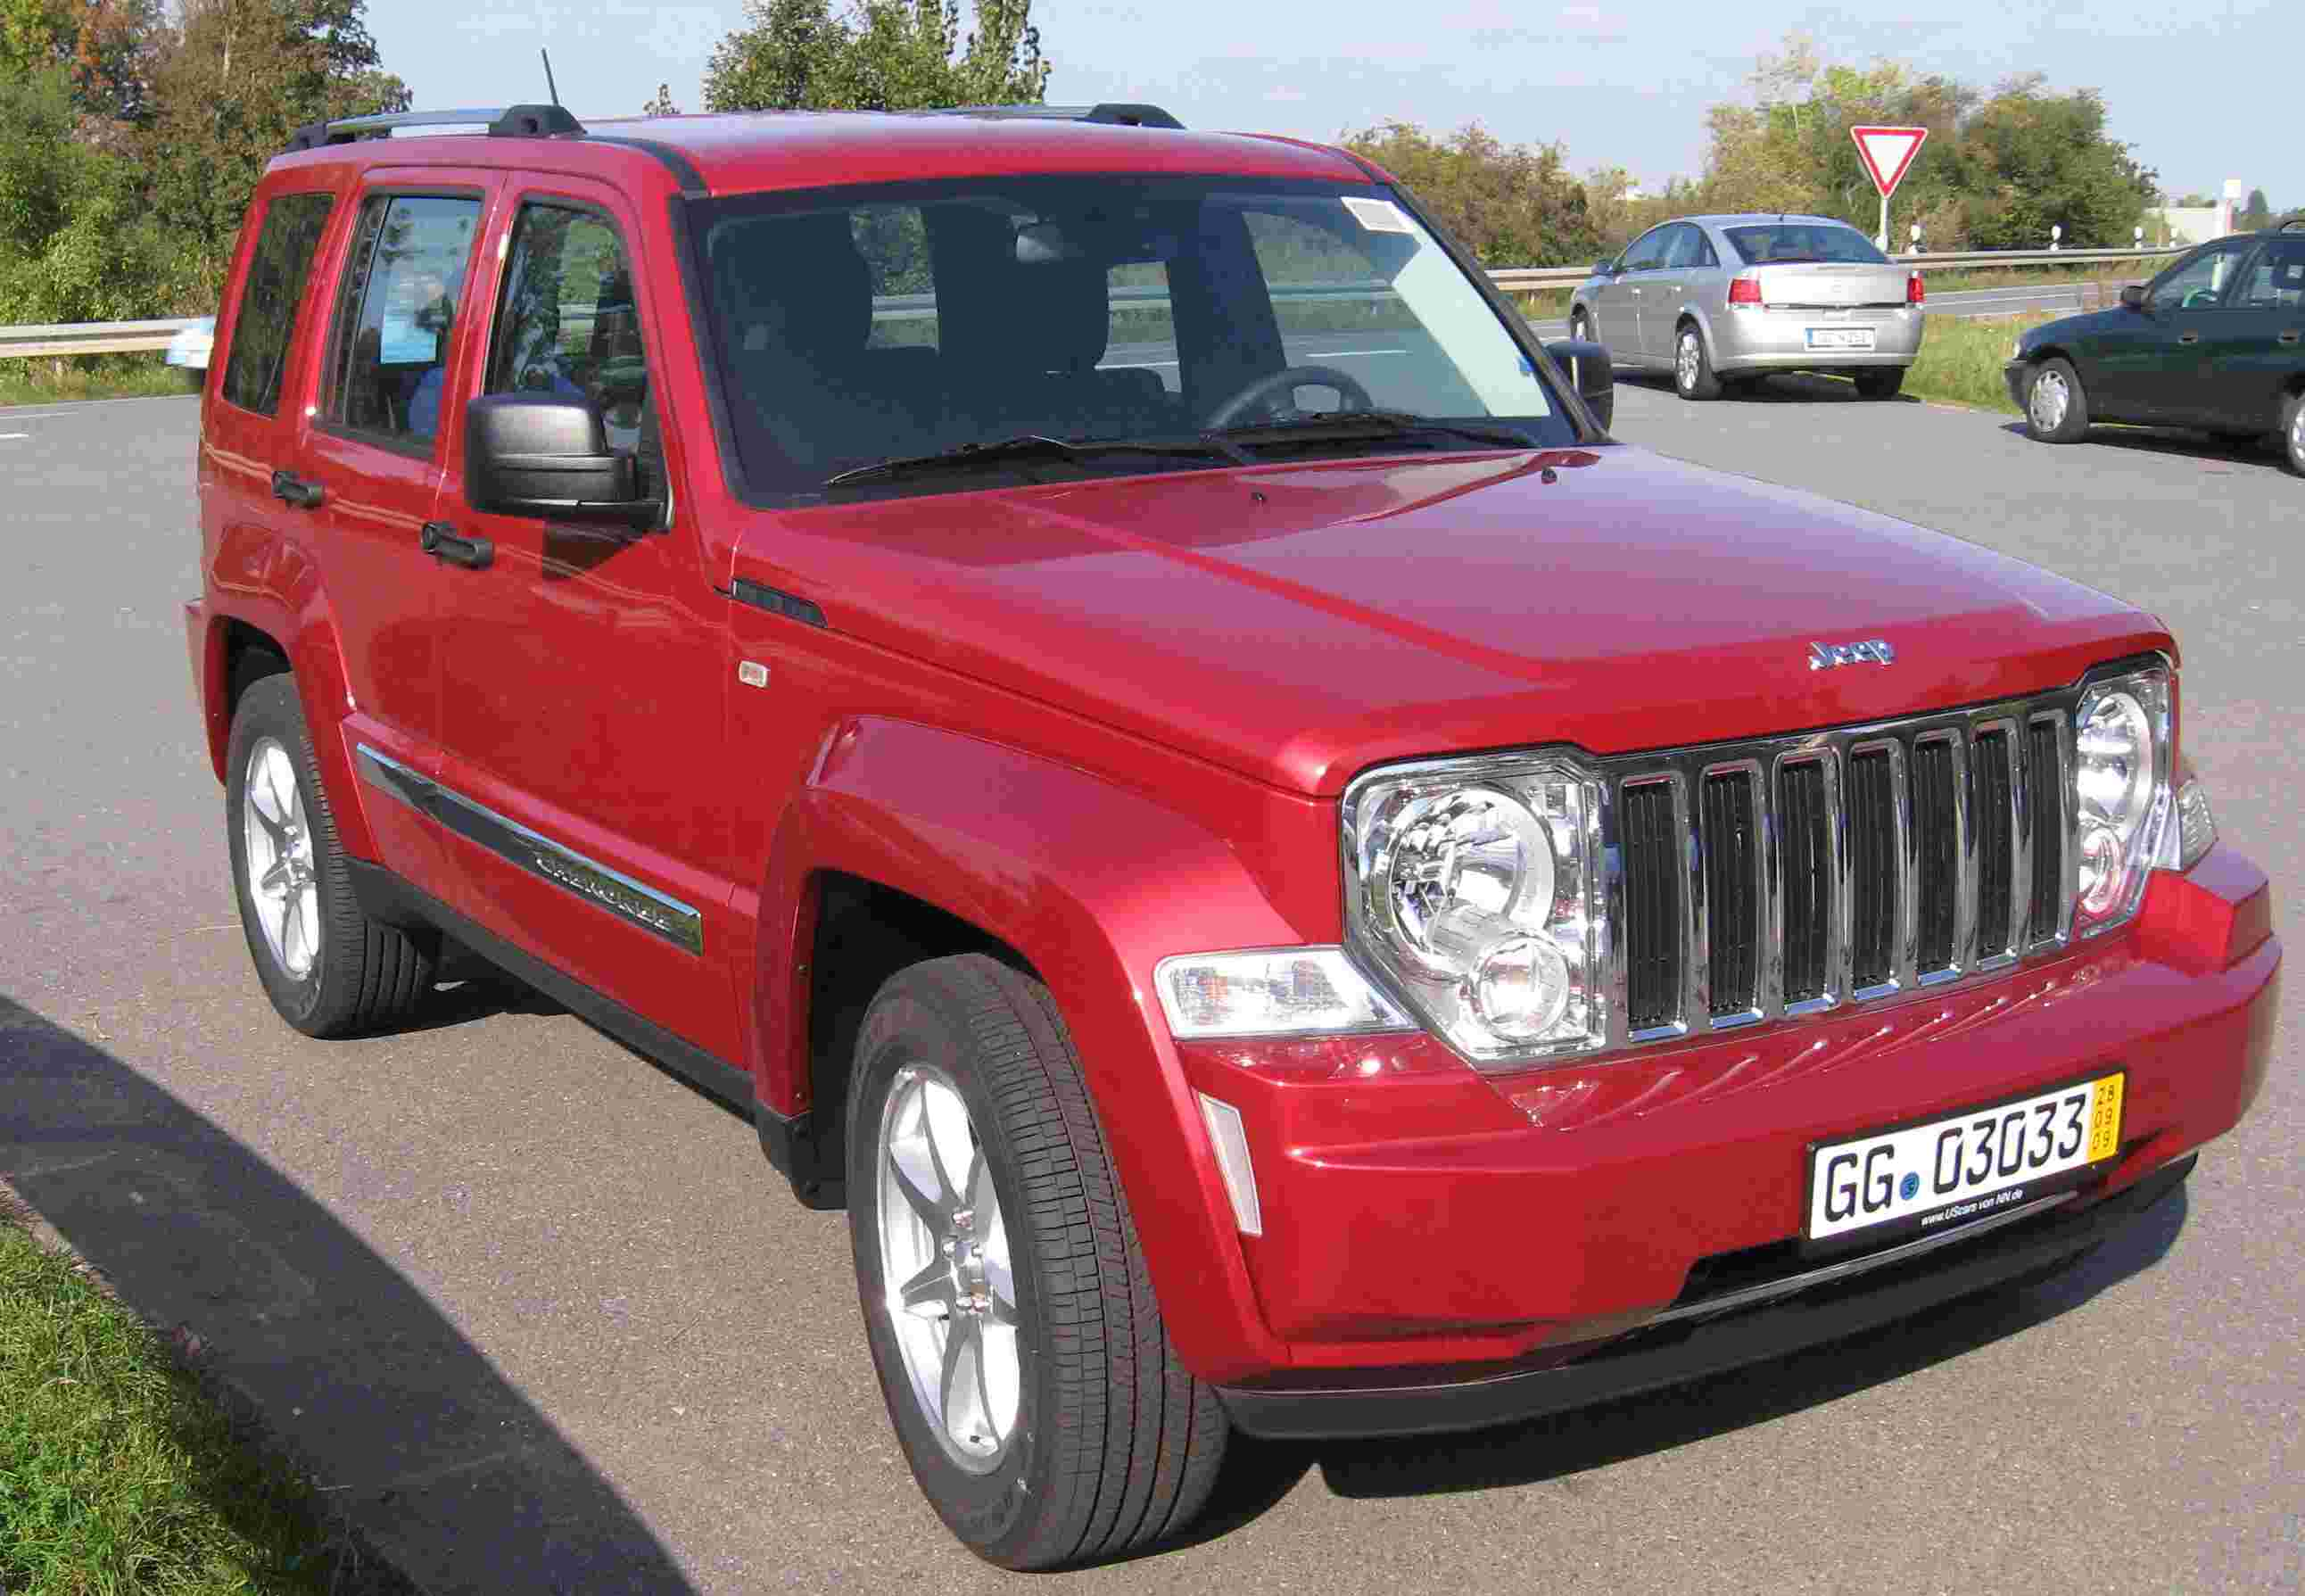 JEEP CHEROKEE V6 RED EDITION 4x4